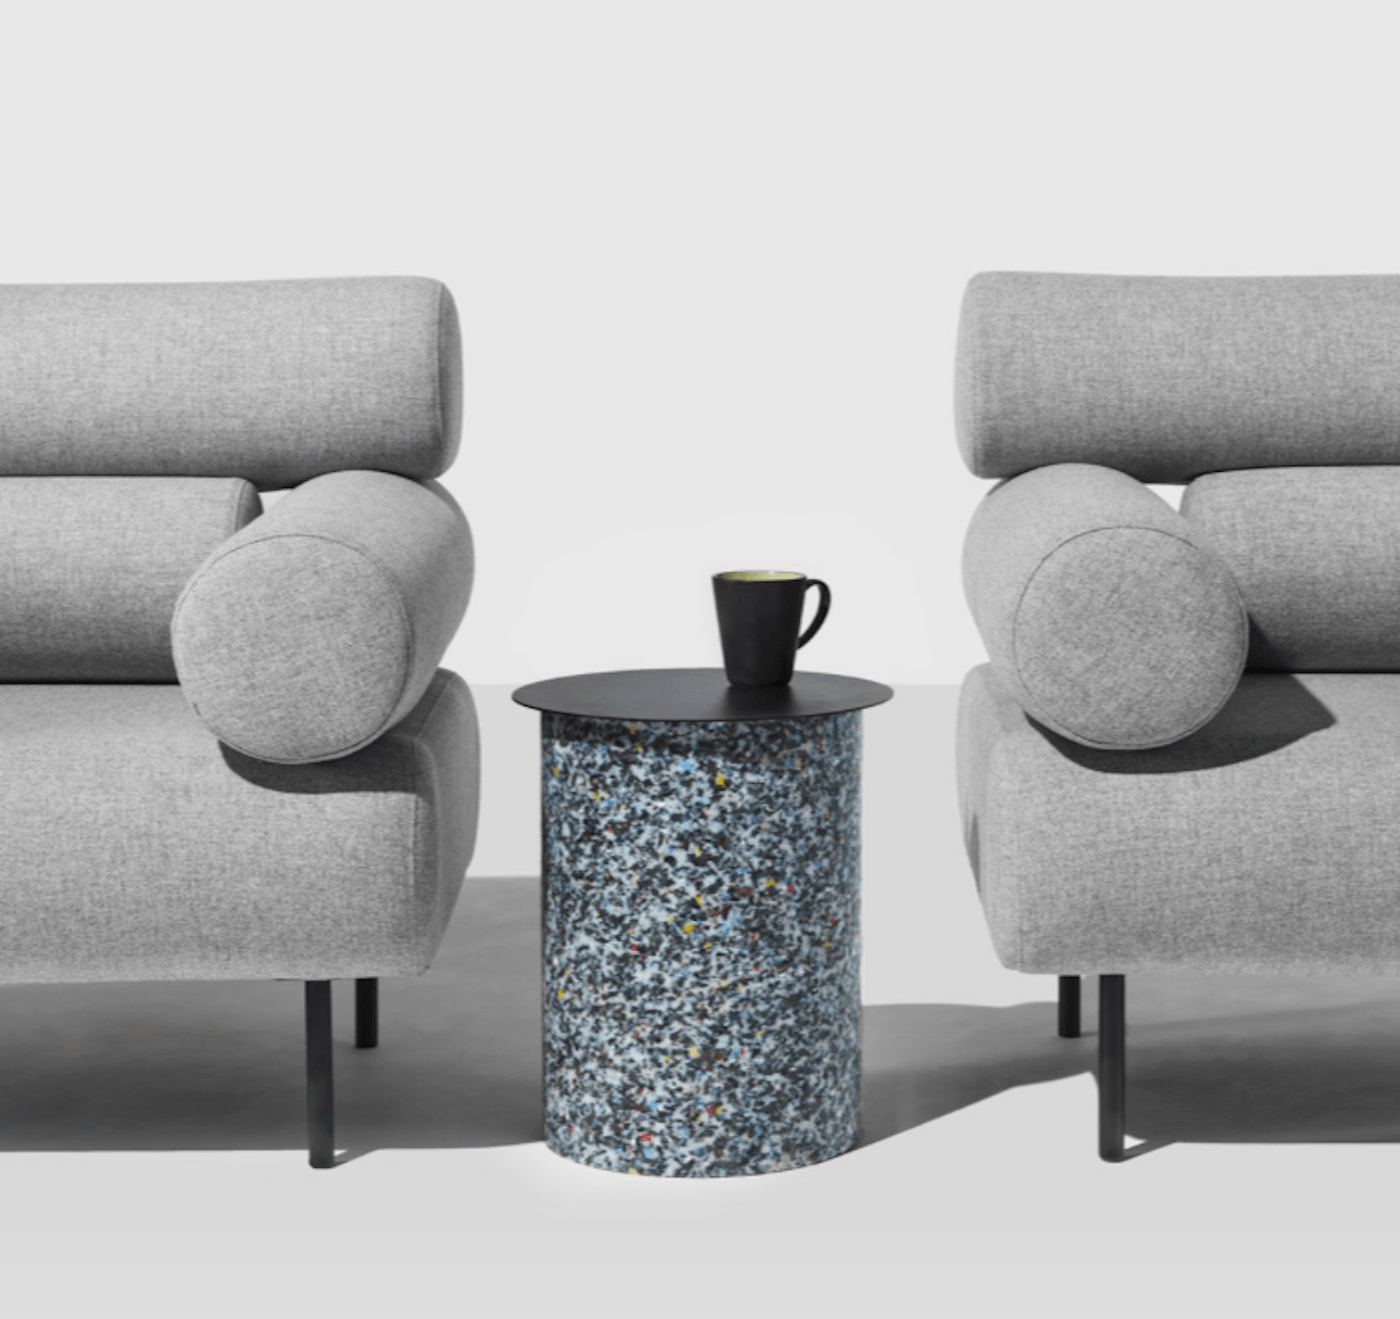 Eco Edition_Design By Them_Confetti range_Sustainable architecture interiors products 1